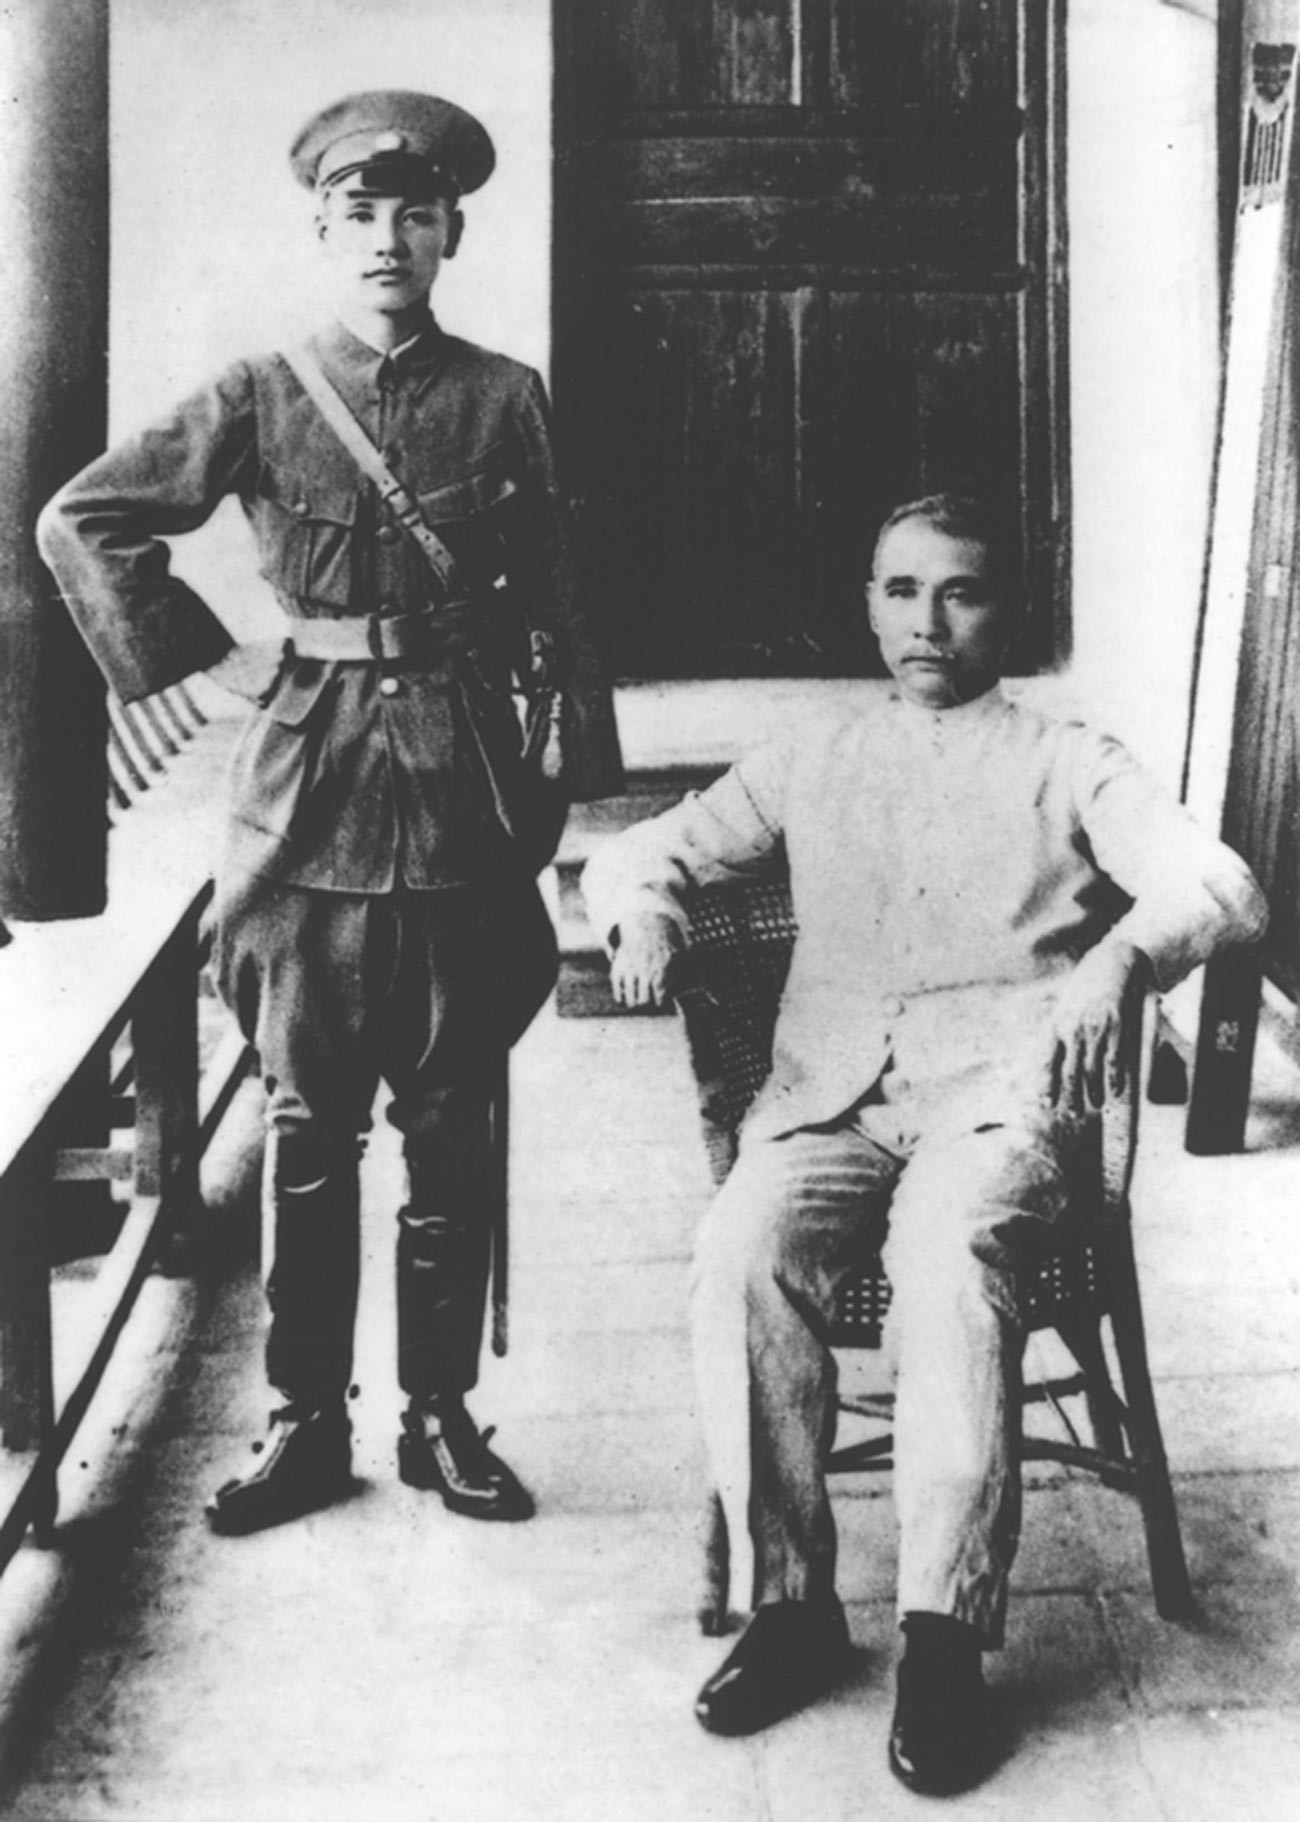 Chiang Kai-shek and Sun Yat-sen in 1924.